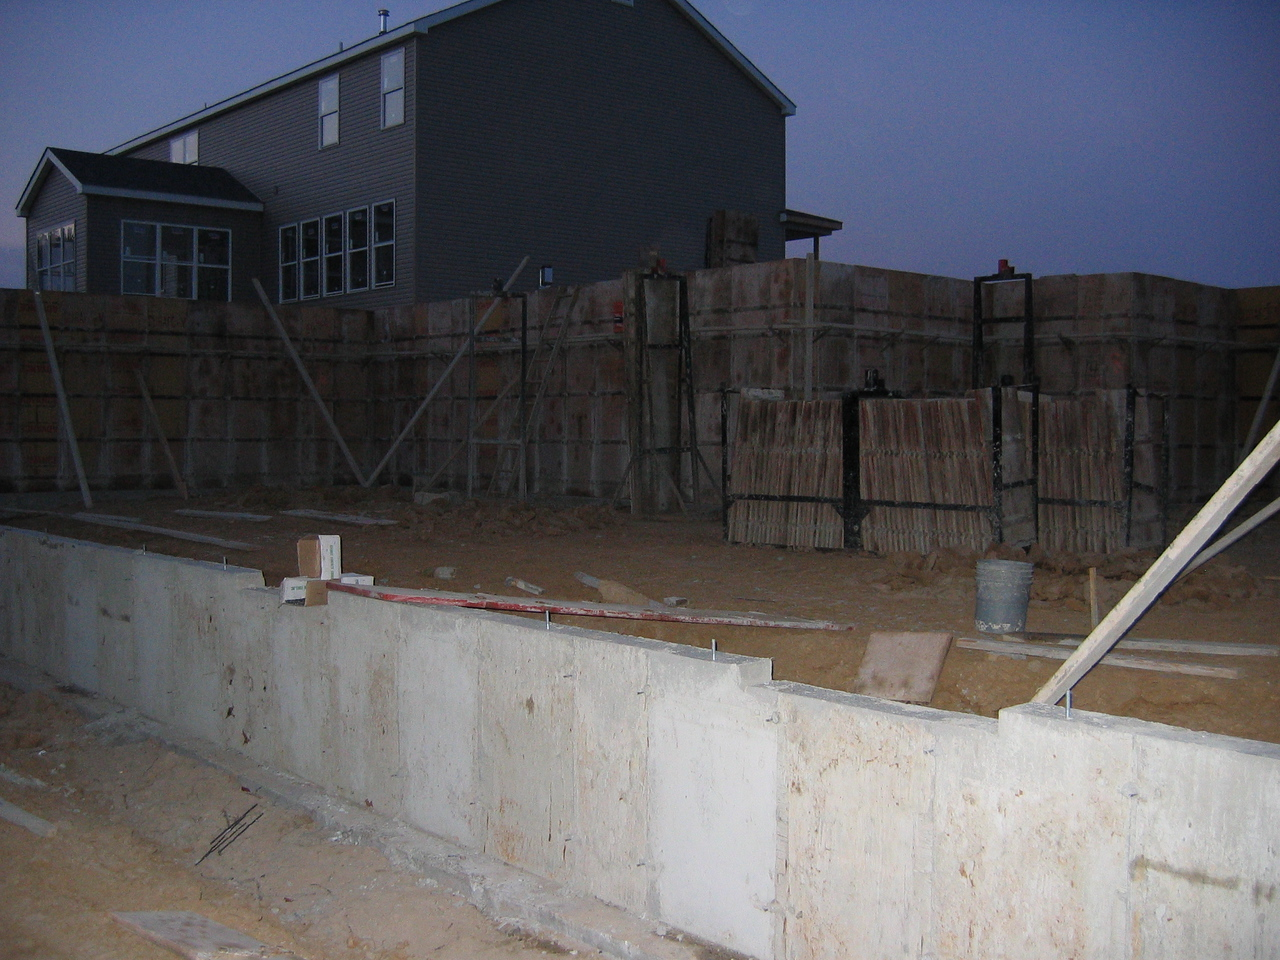 Rear View of the Foundation Forms September 23